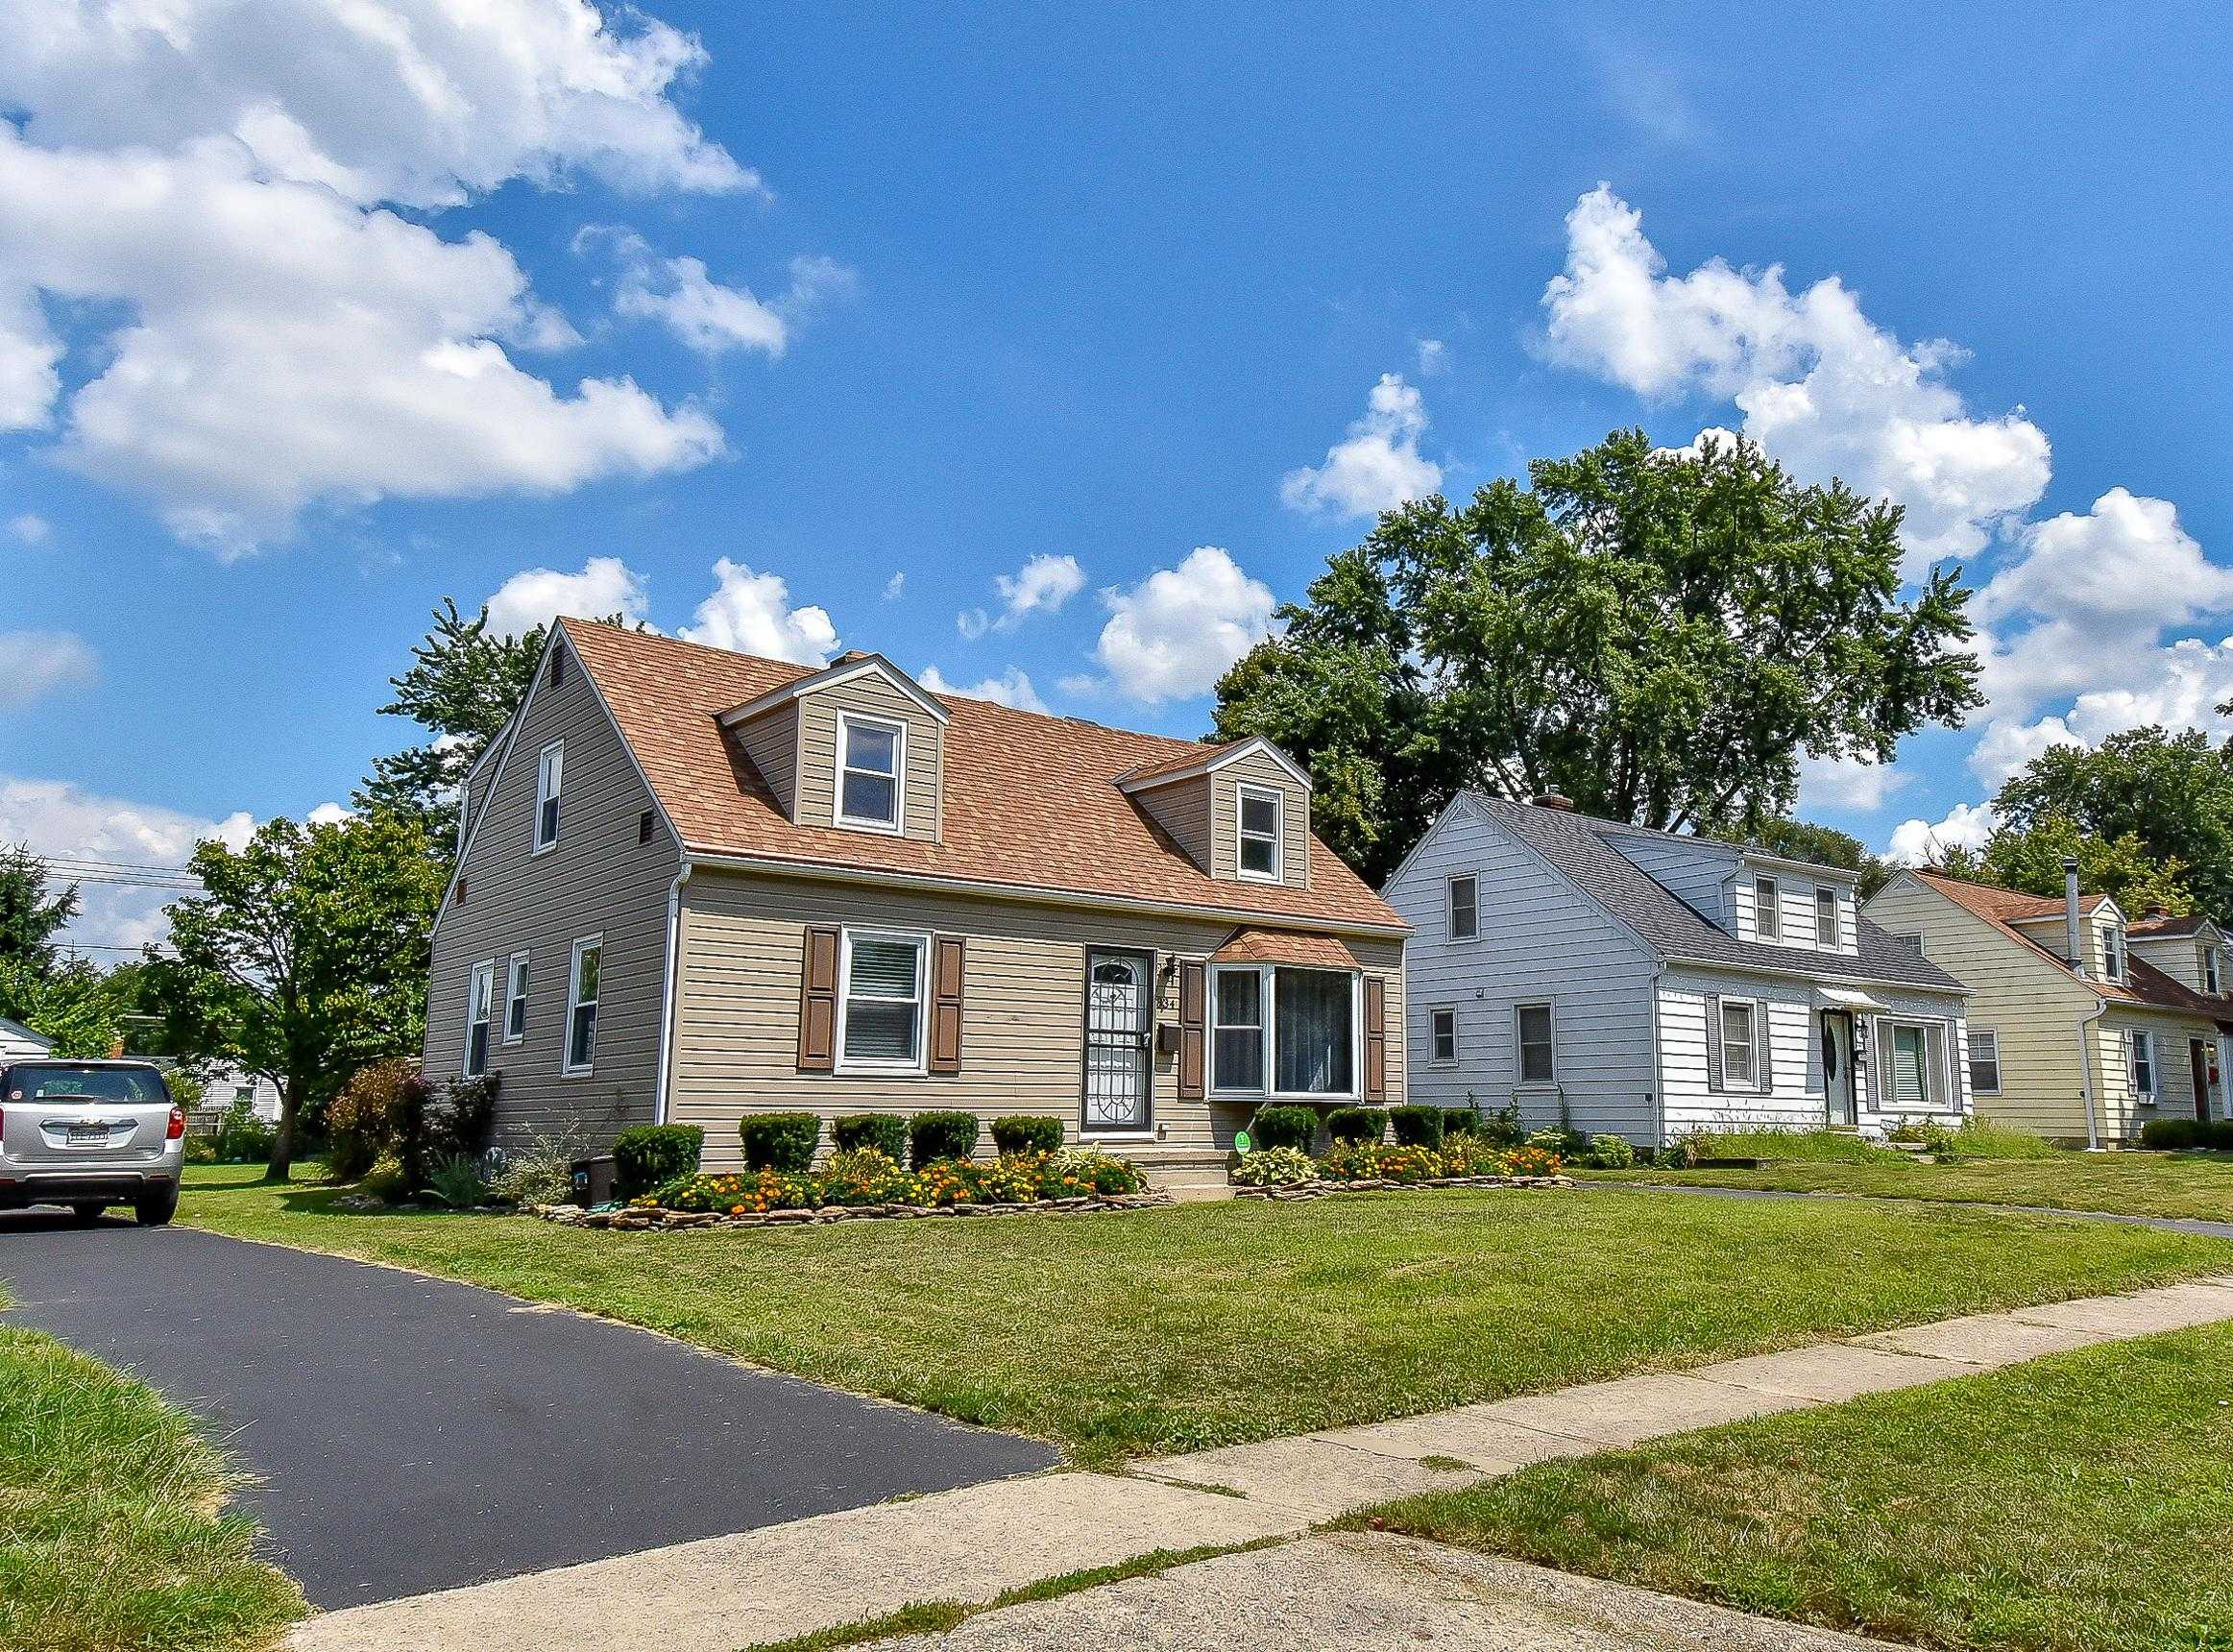 Clintonville , OH - The Realty Firm